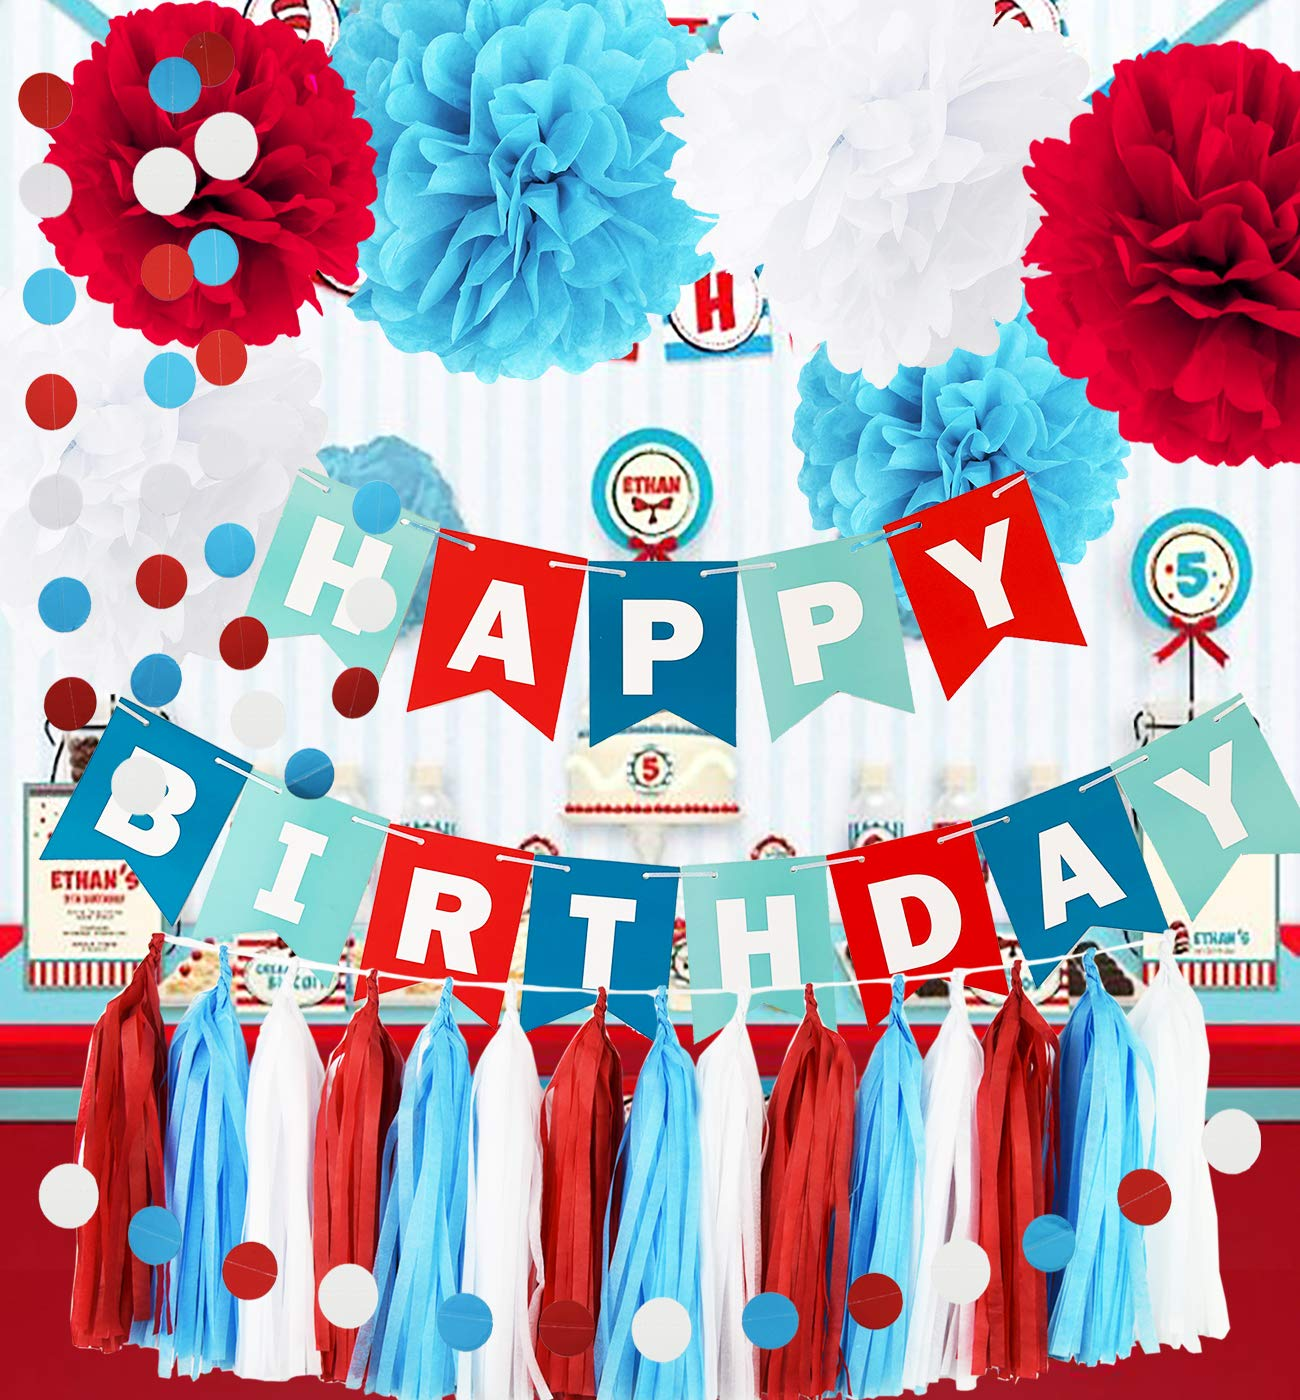 Dr Seuss Cat In The Hat Party Decorations  from m.media-amazon.com